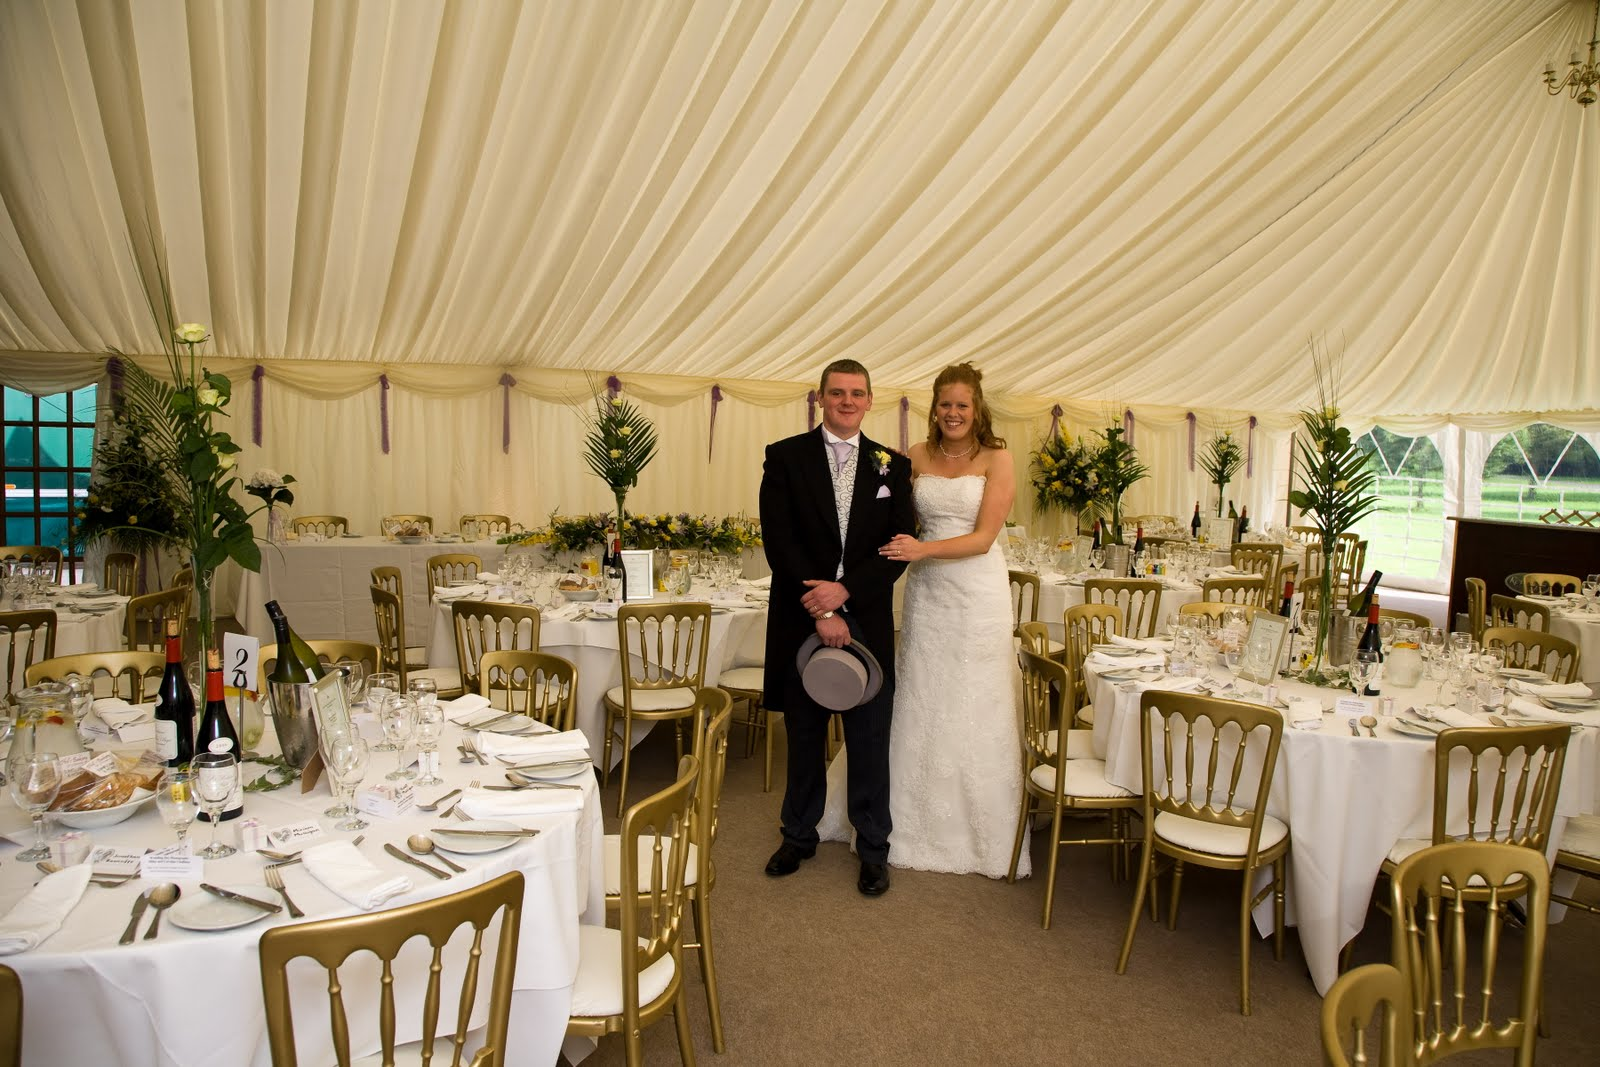 Mike Challinor Wedding Photography A Marquee For Your Wedding